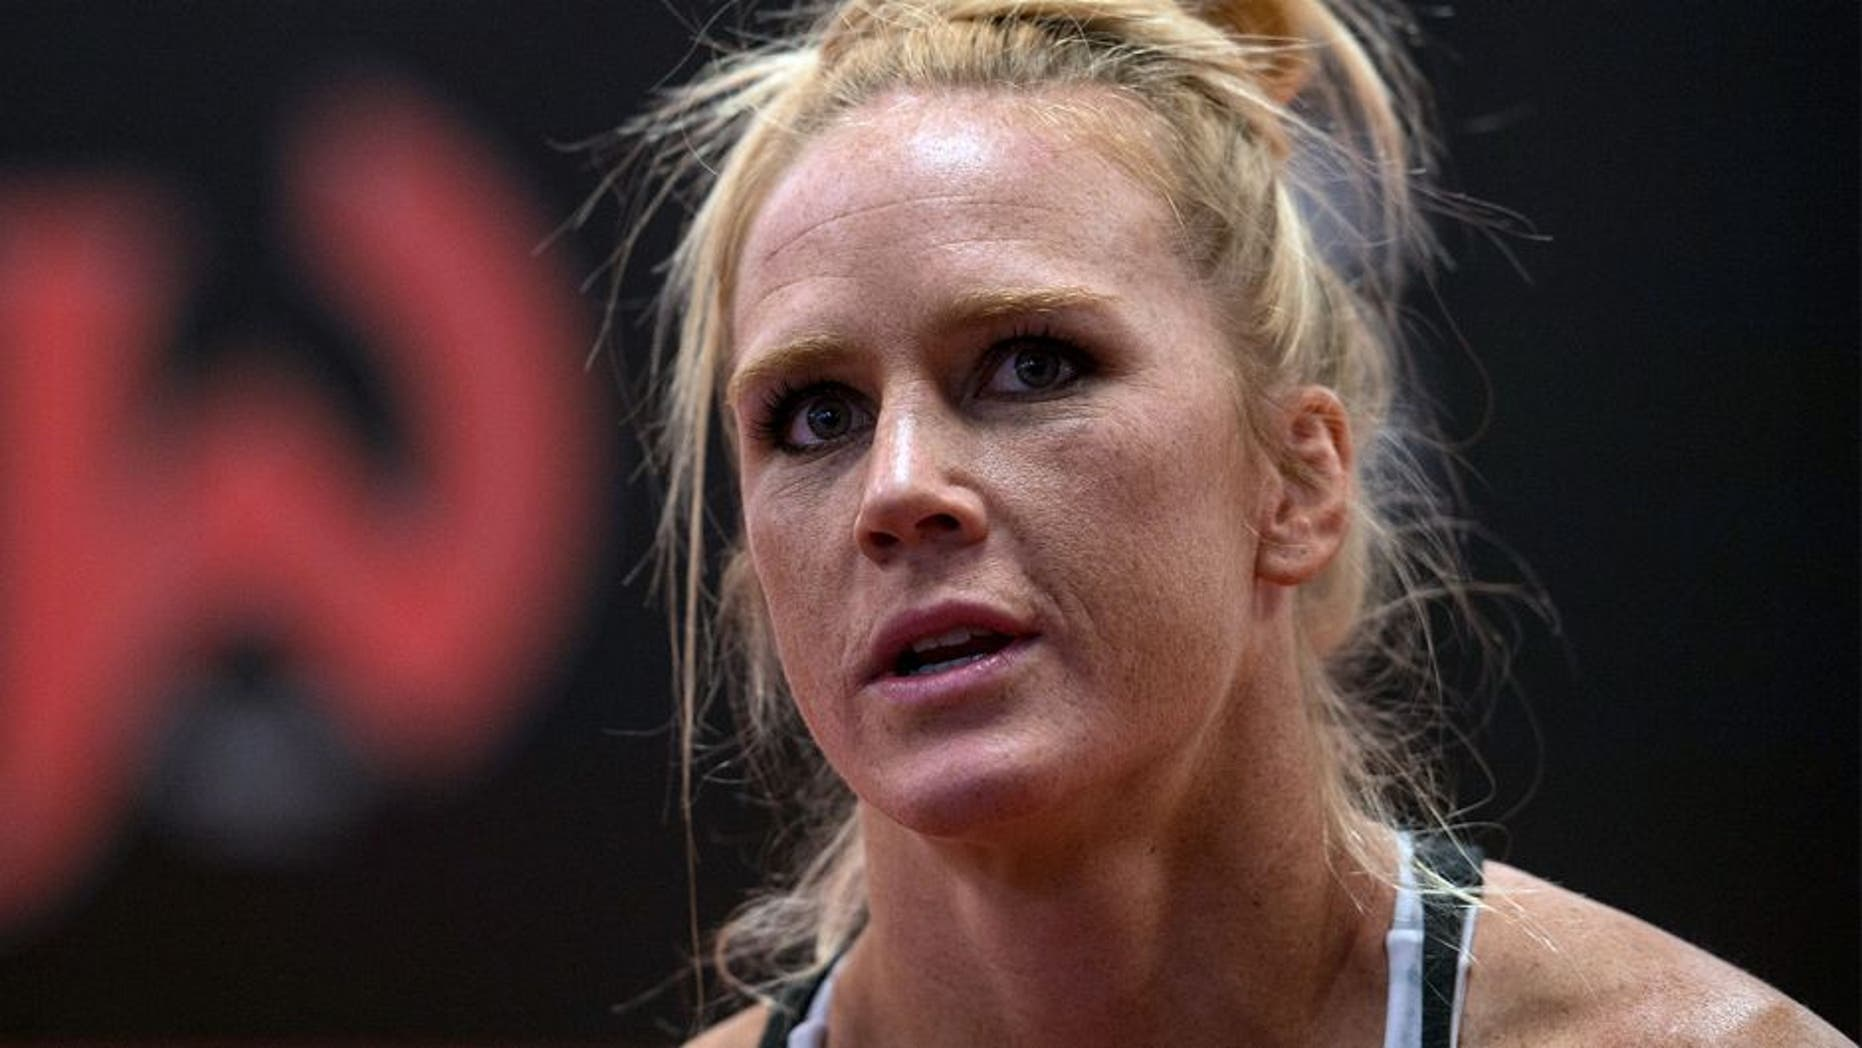 ALBUQUERQUE, NM - OCTOBER 30: Holly Holm talks with her coach during her training at Jackson's Mixed Martial Arts & Fitness on October 30, 2015 in Albuquerque, New Mexico. (Photo by Brandon Magnus/Zuffa LLC/Zuffa LLC via Getty Images)